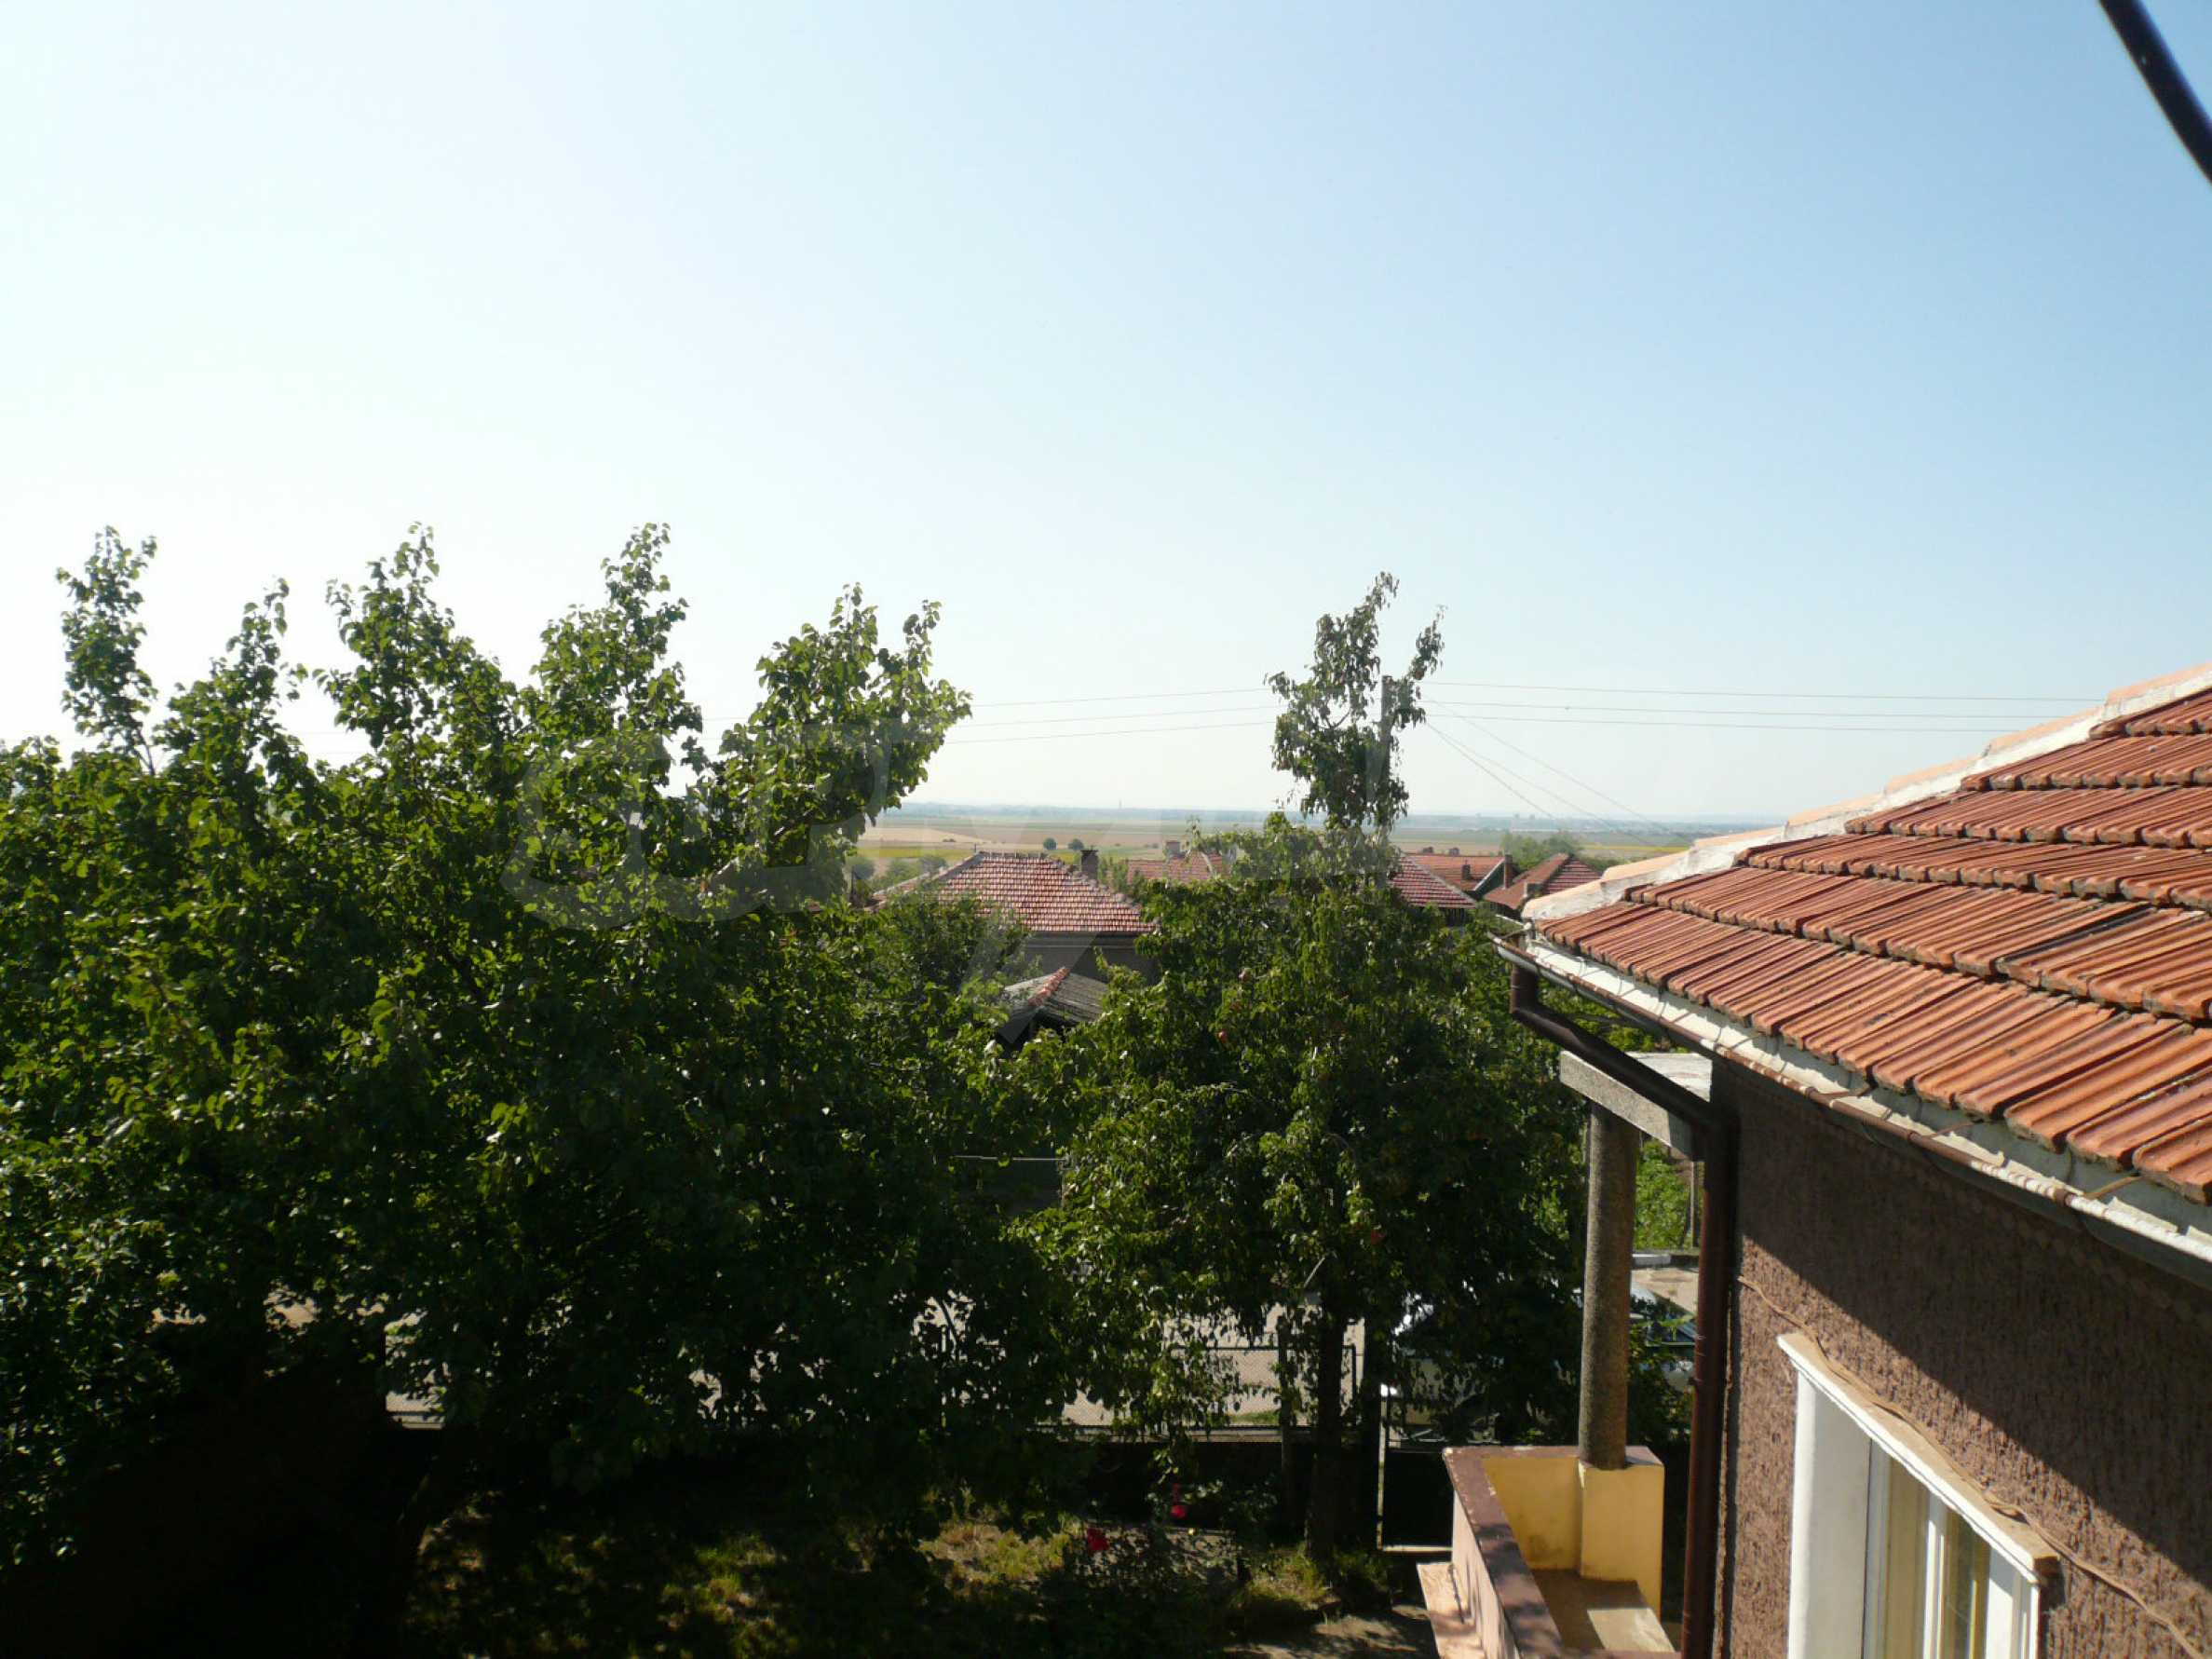 Rural houses with garden 12 km from Vidin 12